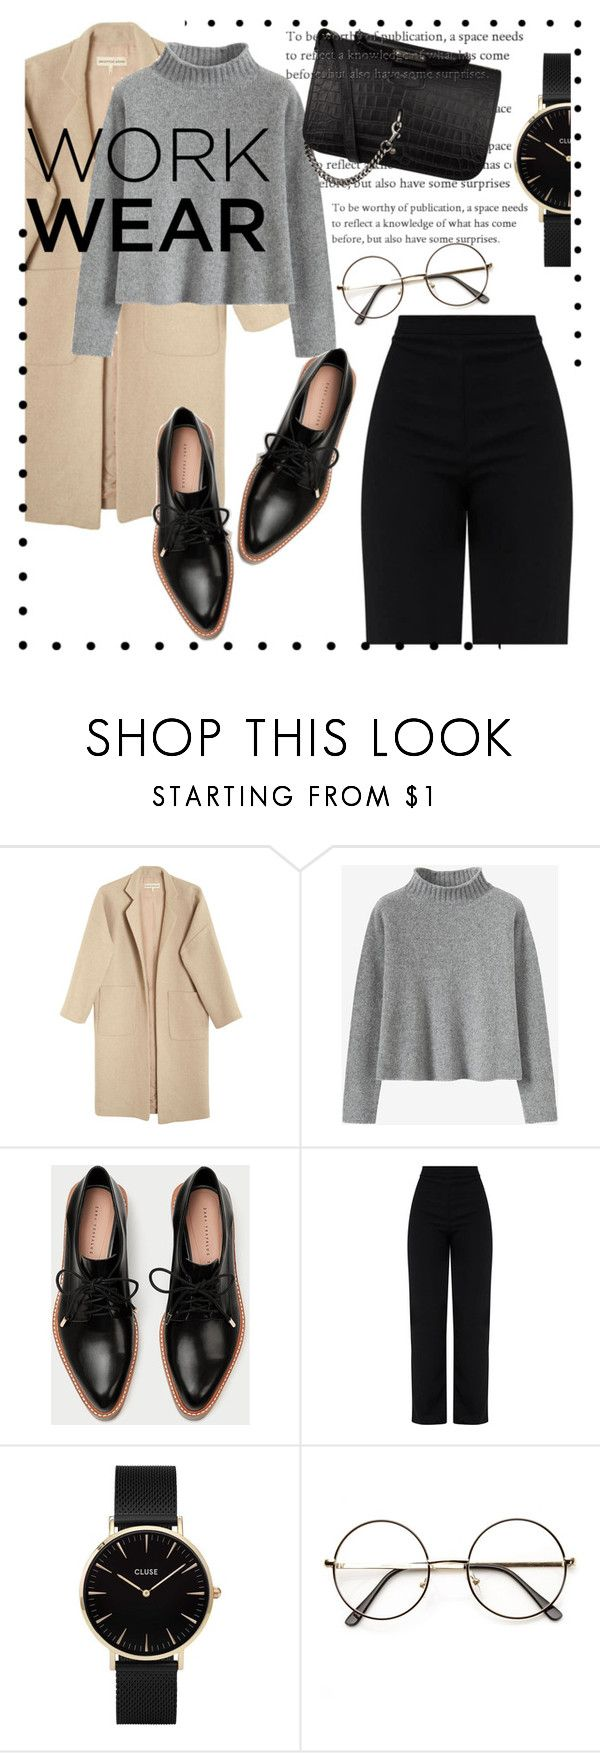 """""""work"""" by mermaind-jane ❤ liked on Polyvore featuring Mara Hoffman, CLUSE, Yves Saint Laurent, WorkWear and 60secondstyle"""